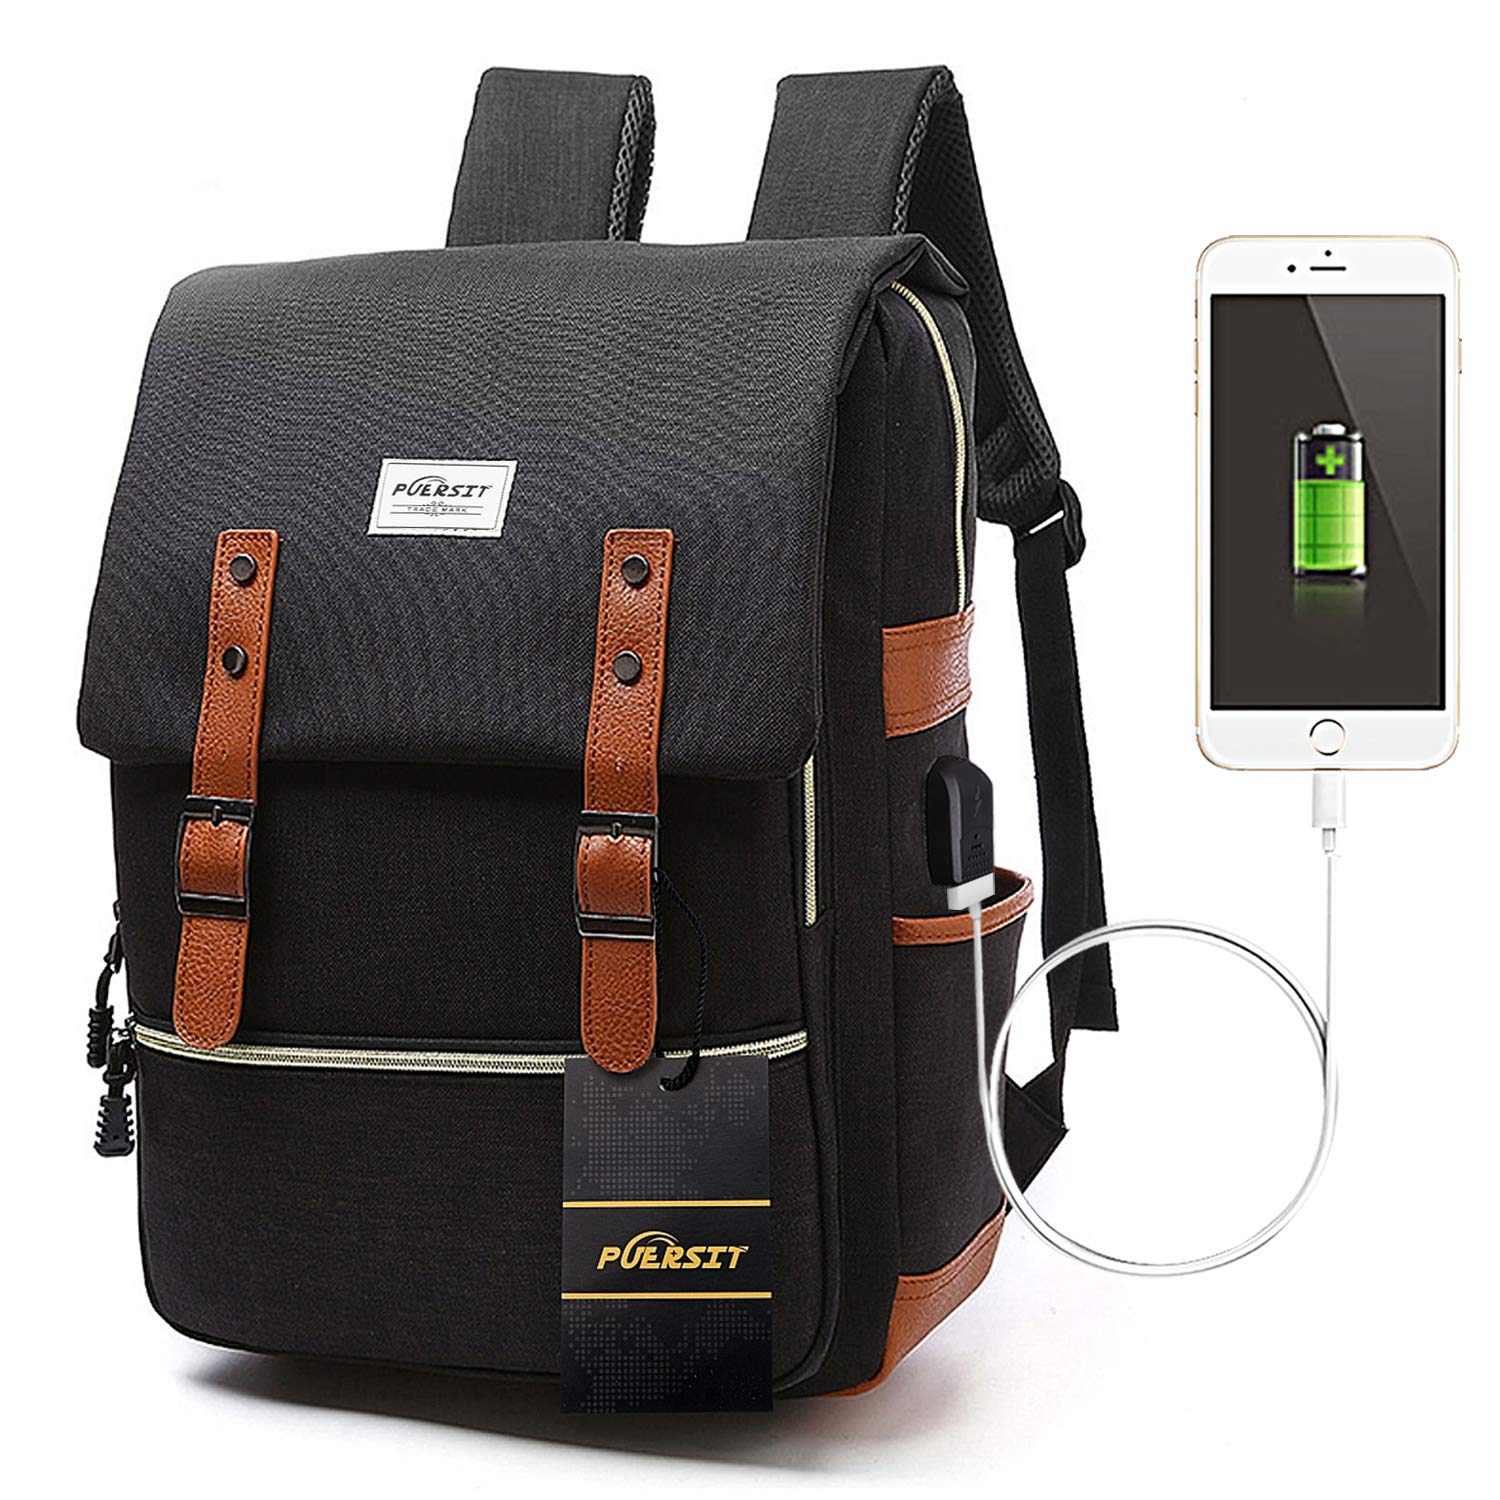 Puersit Vintage Laptop Backpack 15 Inch Canvas College School Backpack with USB Charging Port for Travel Unisex Backpack